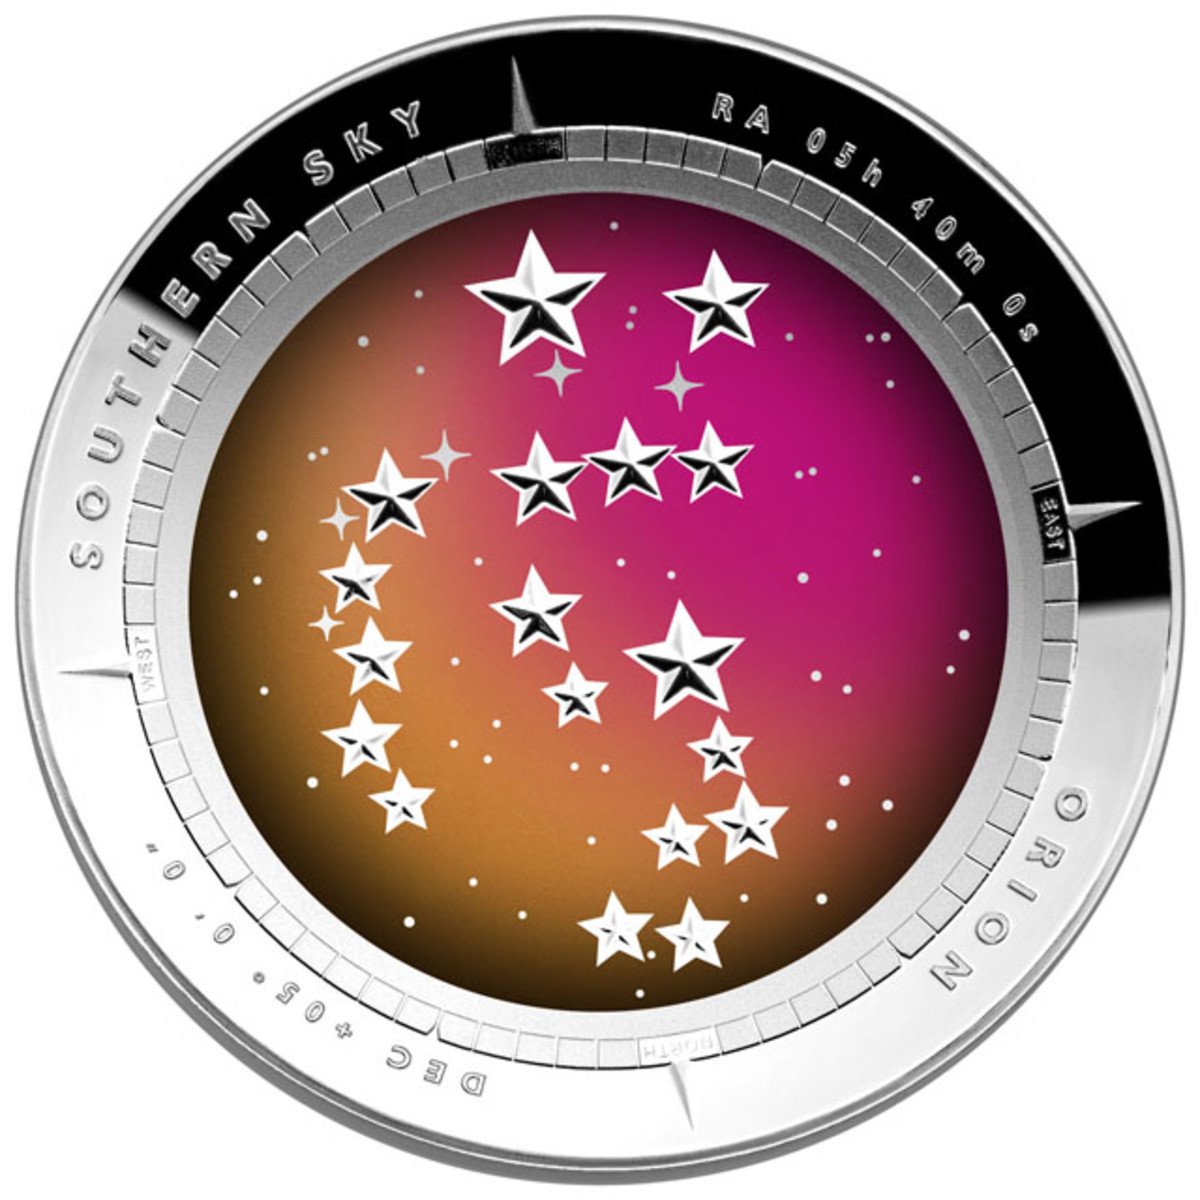 A cupped or dome-shaped coin from the Australian Mint will feature the constellation of Orion. The coin is a silver $5 proof. In Australia, Orion appears to be standing on his head.